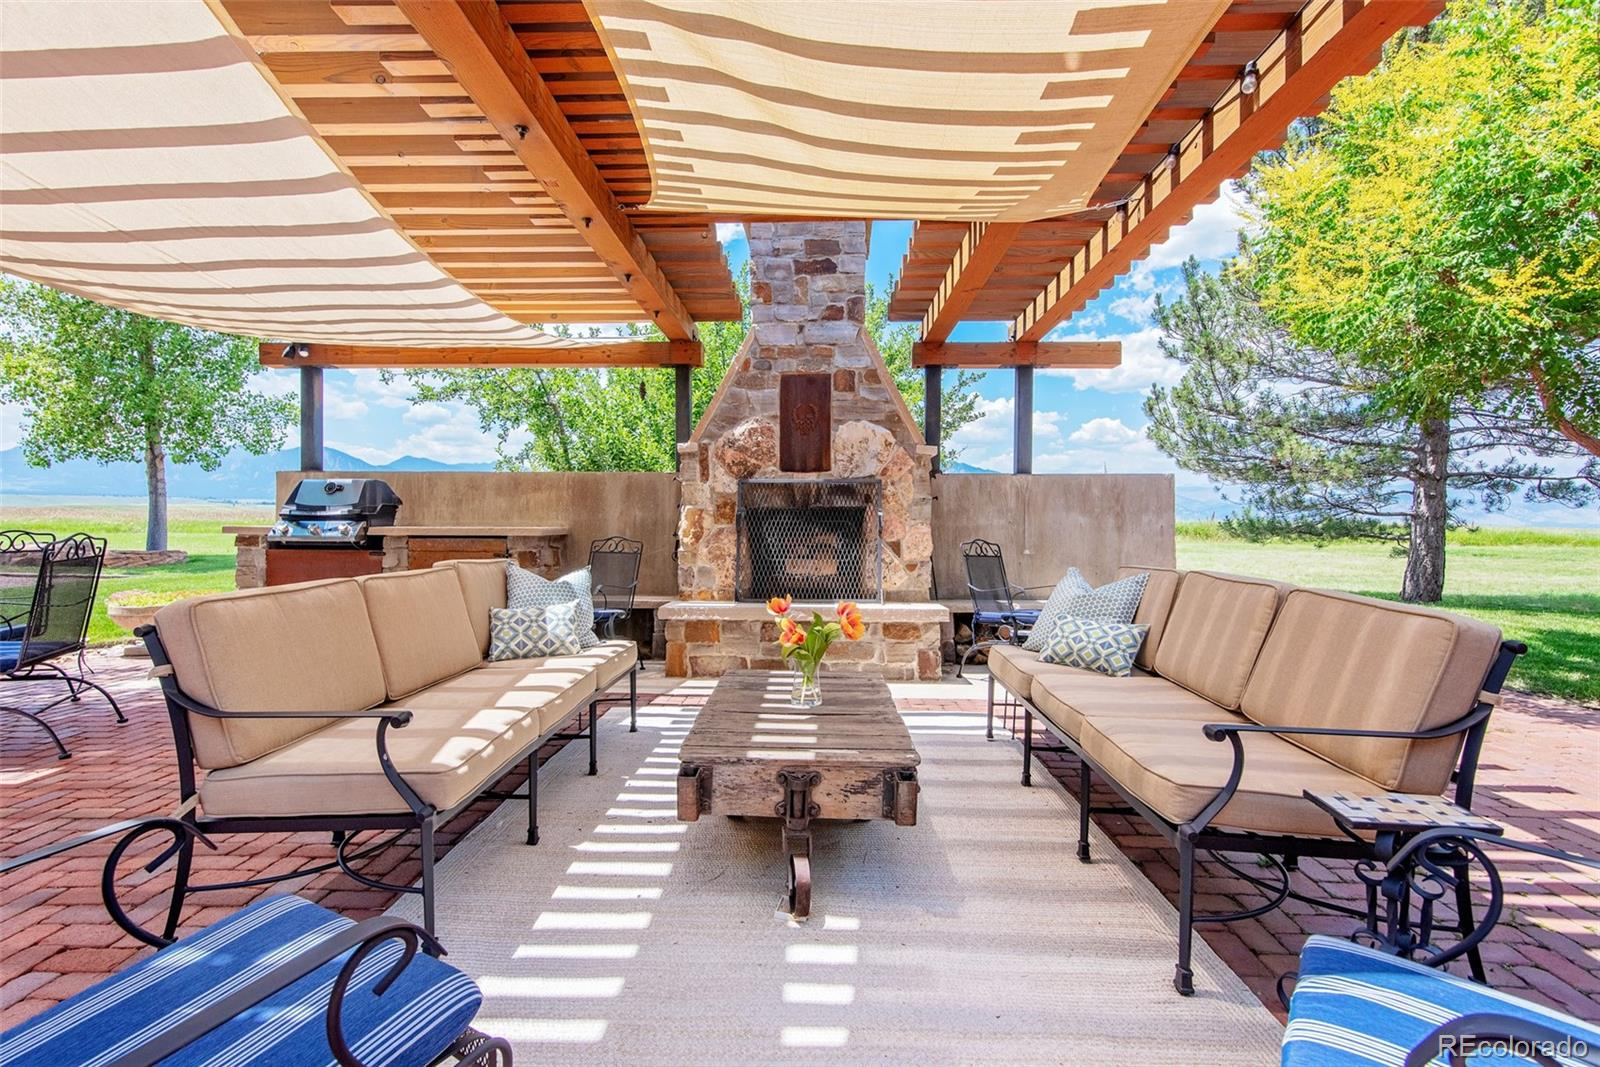 Outdoor Fireplace and seating areas